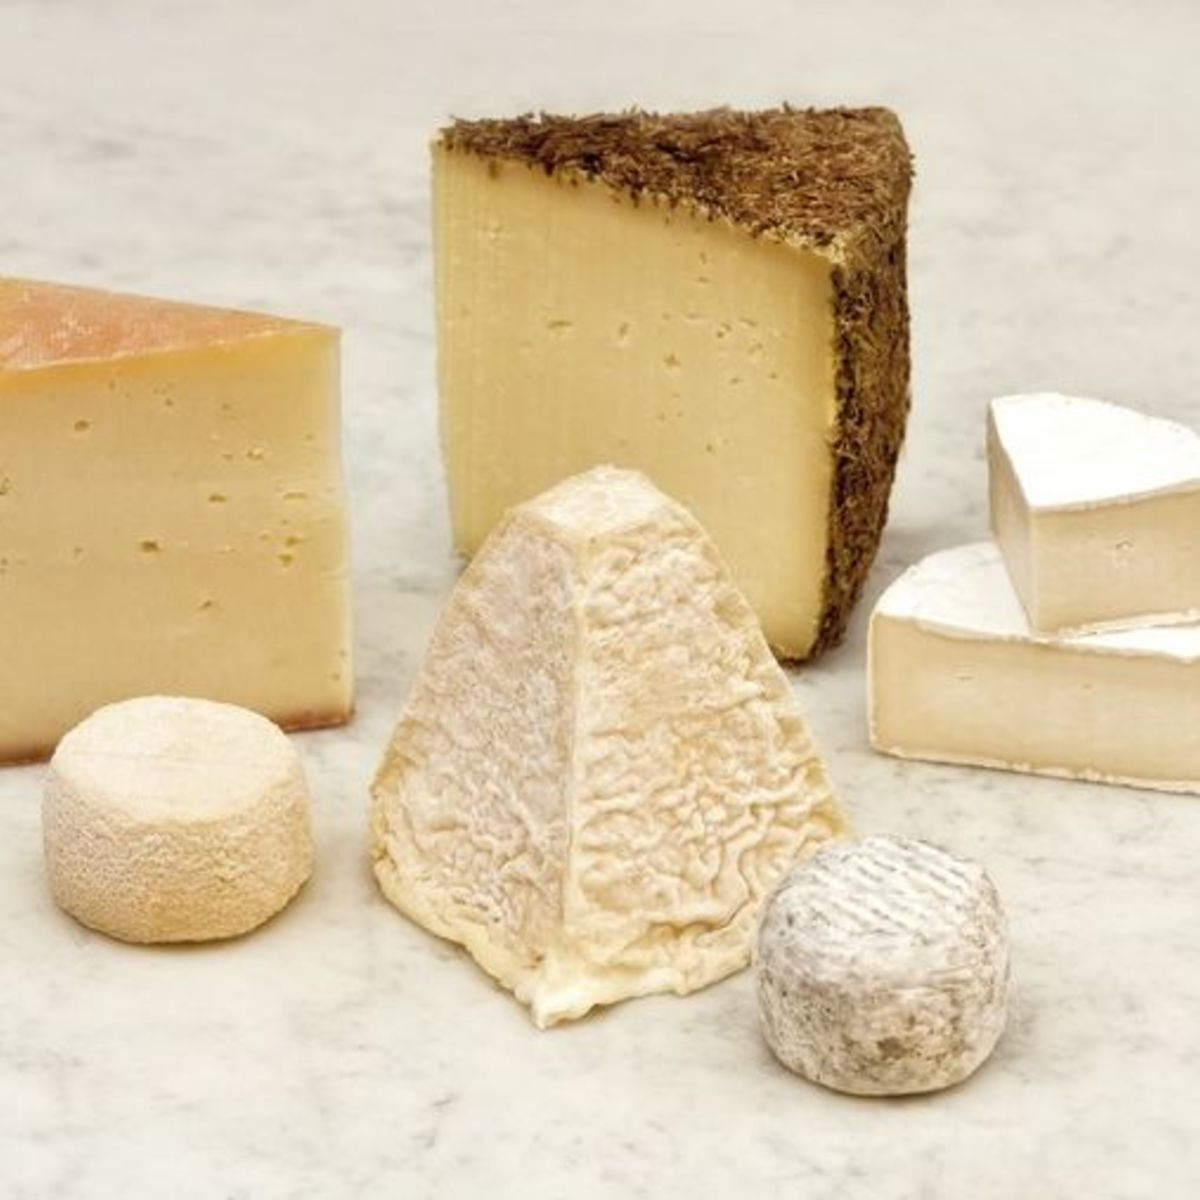 The picture shows several kinds of goat and sheep cheese.